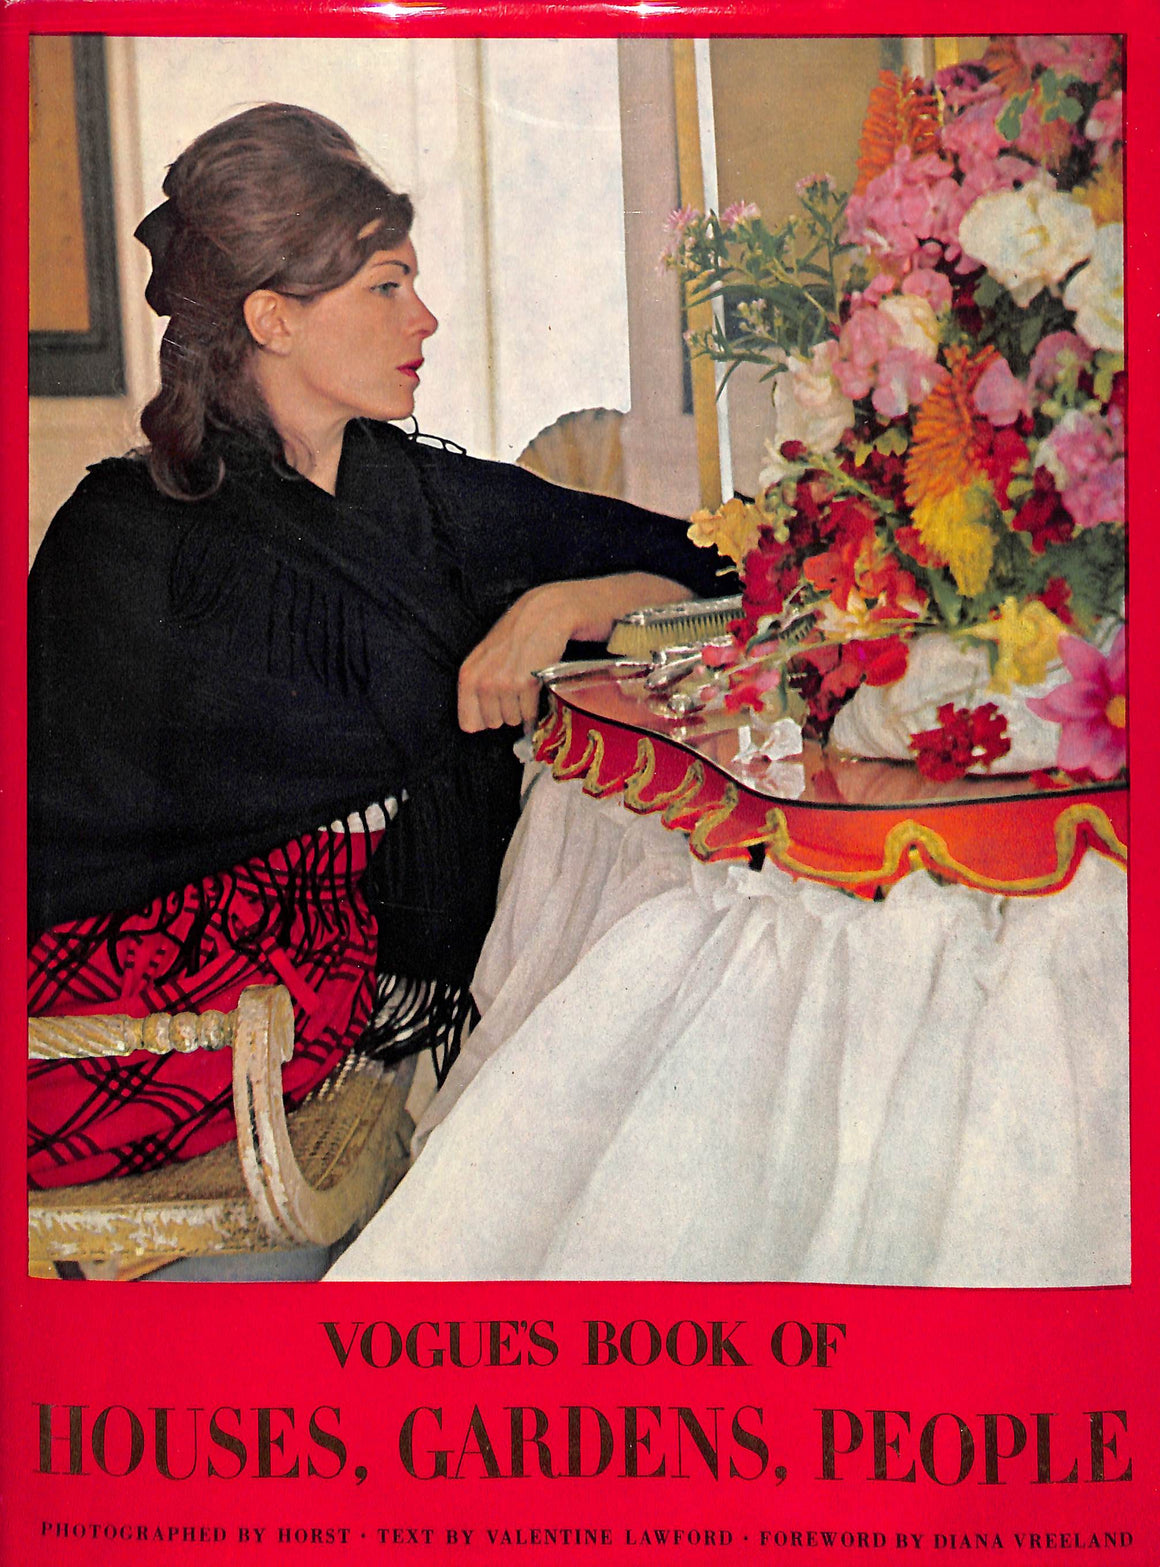 """Vogue's Book of Houses, Gardens, People"" 1968 LAWFORD, Valentine [Text]"